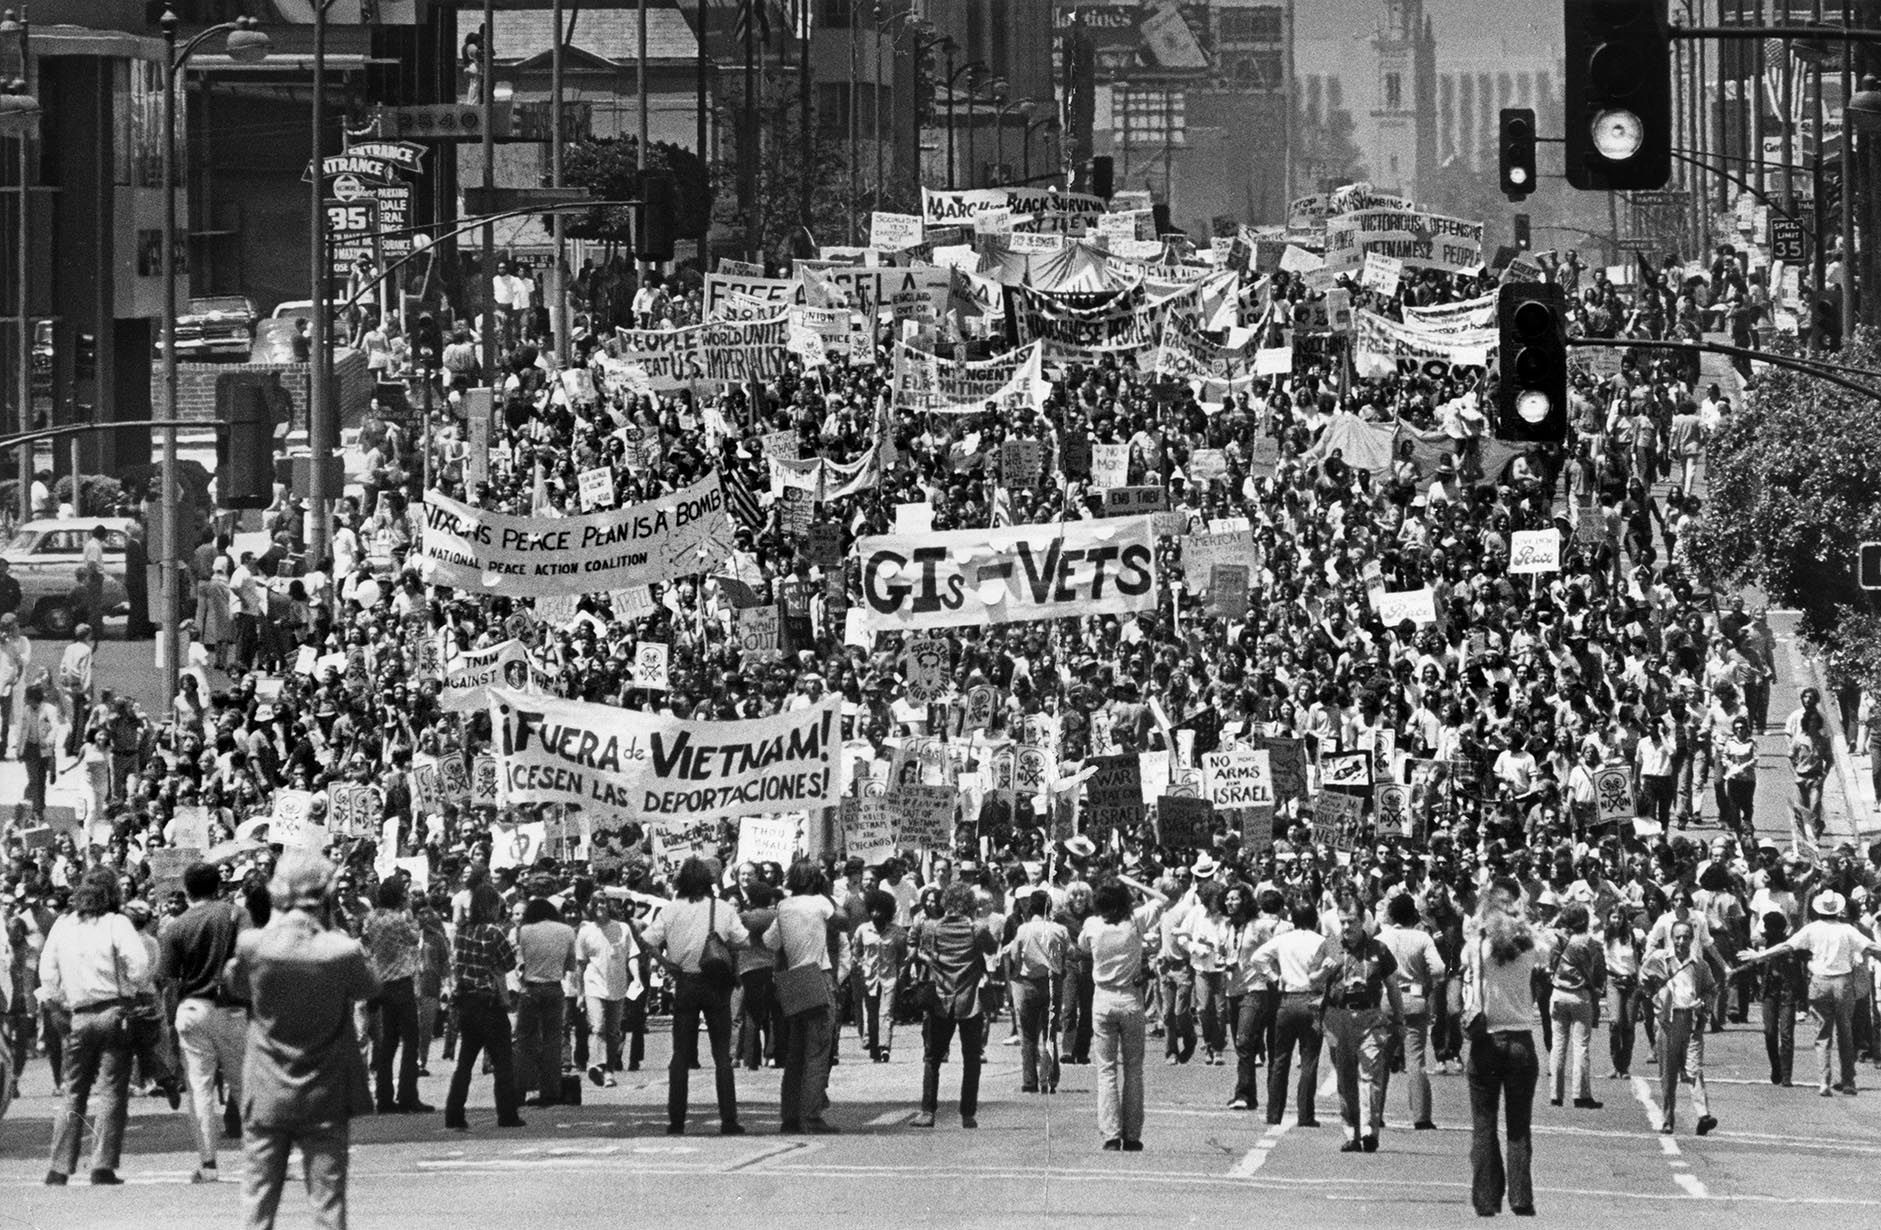 News From California The Nation And World Los Angeles Times Vietnam History Vietnam Protests Vietnam